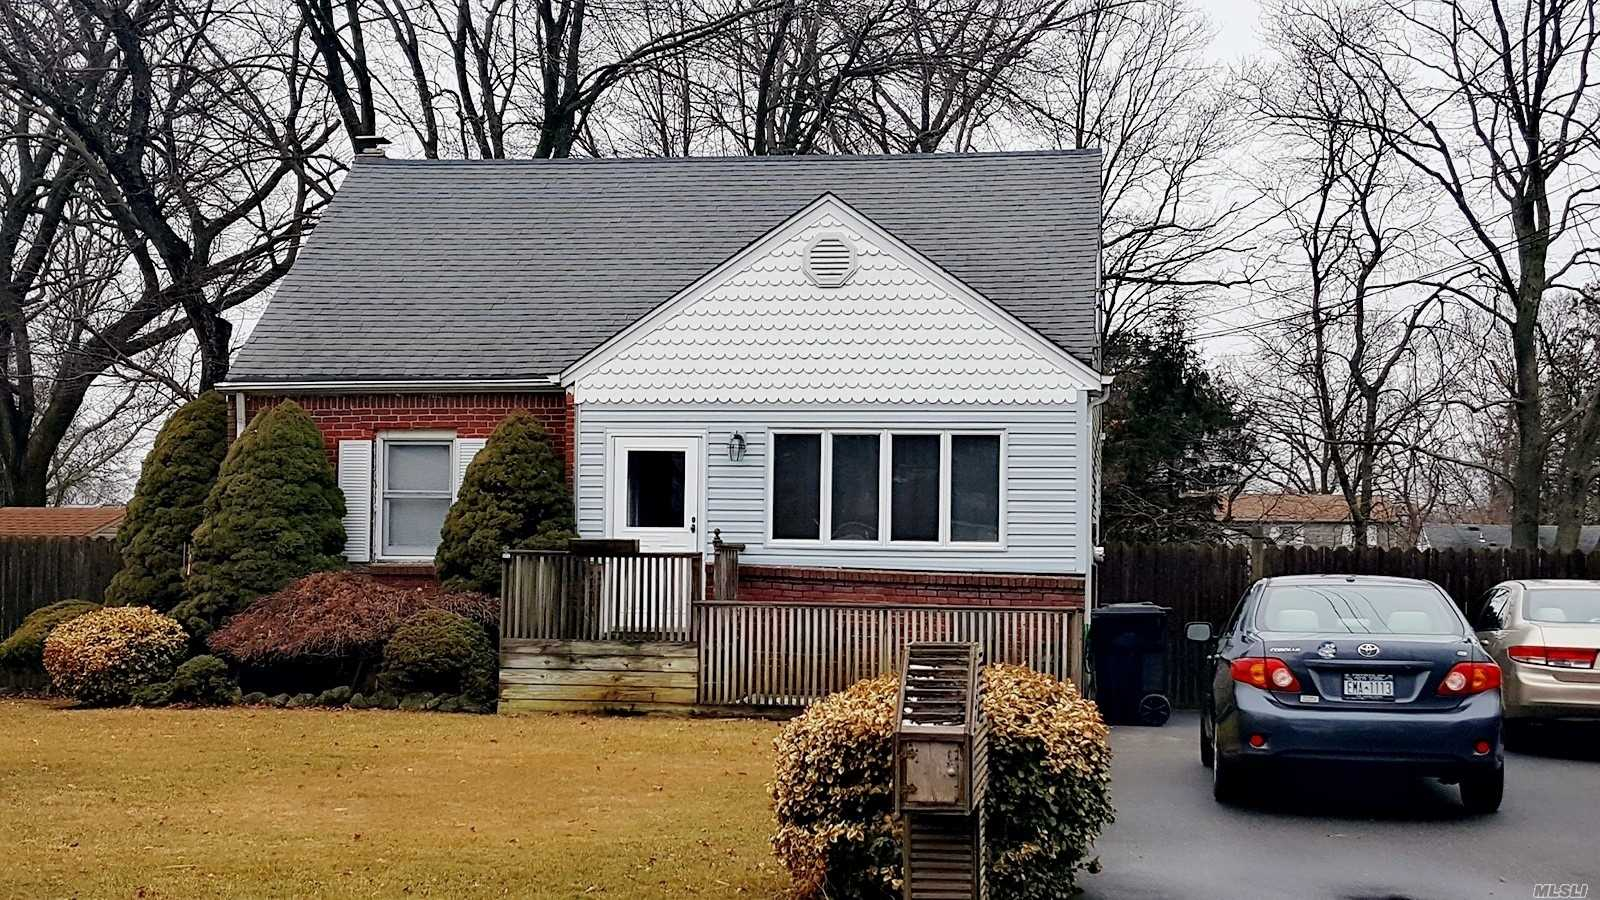 Looking For A Lovely Home In West Islip School District Under 400K? Look No Further... This Spotless 4 Bdr Home With Gas Cooking And A Fully Fenced In Yard Is Located On The Beautiful Cotter Street W/ A Full Basement And Attic For All Your Storage, Present Your Offers!